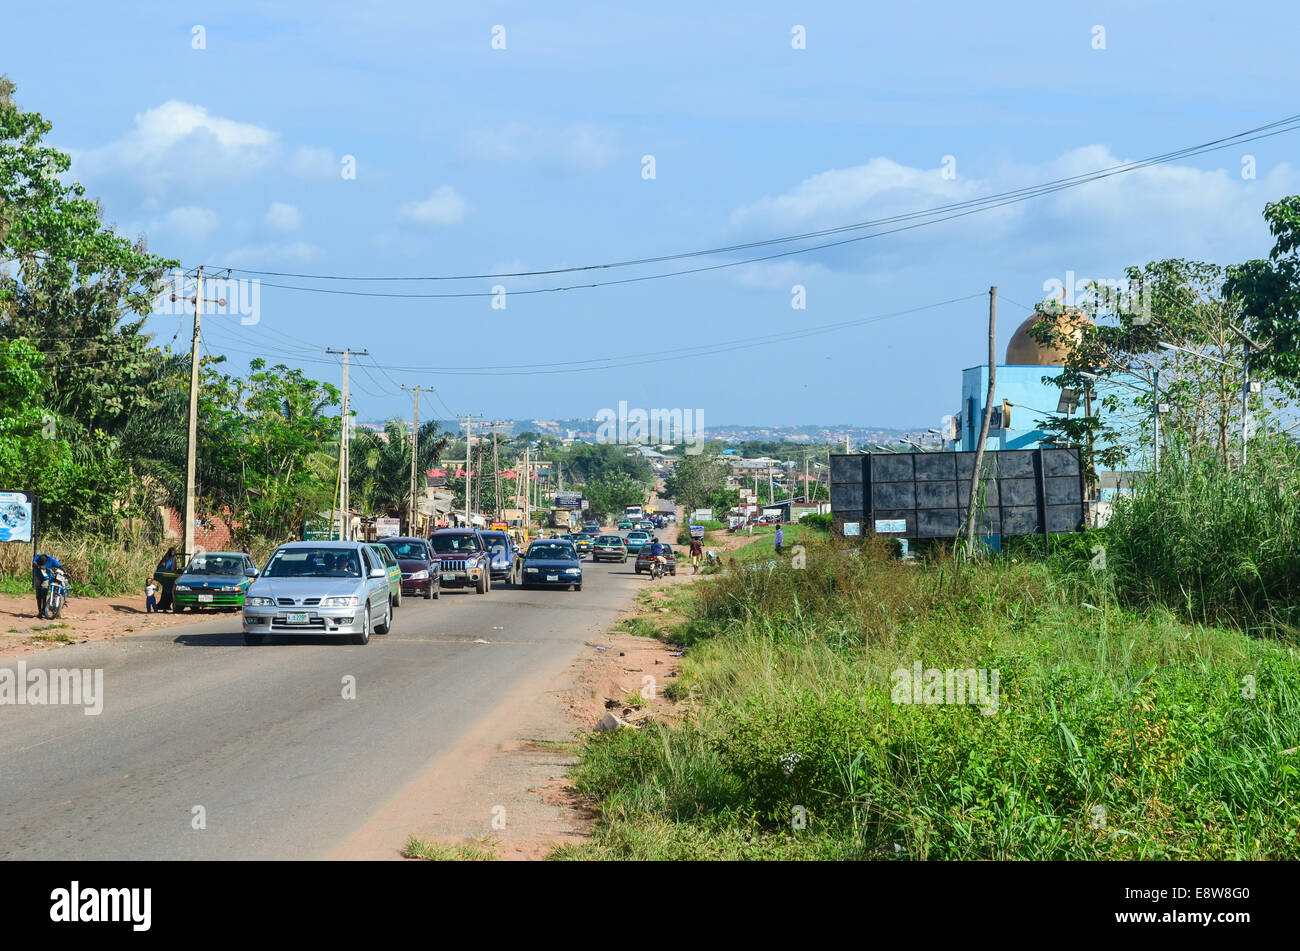 Road at the entrance of the city of Abeokuta, Nigeria - Stock Image